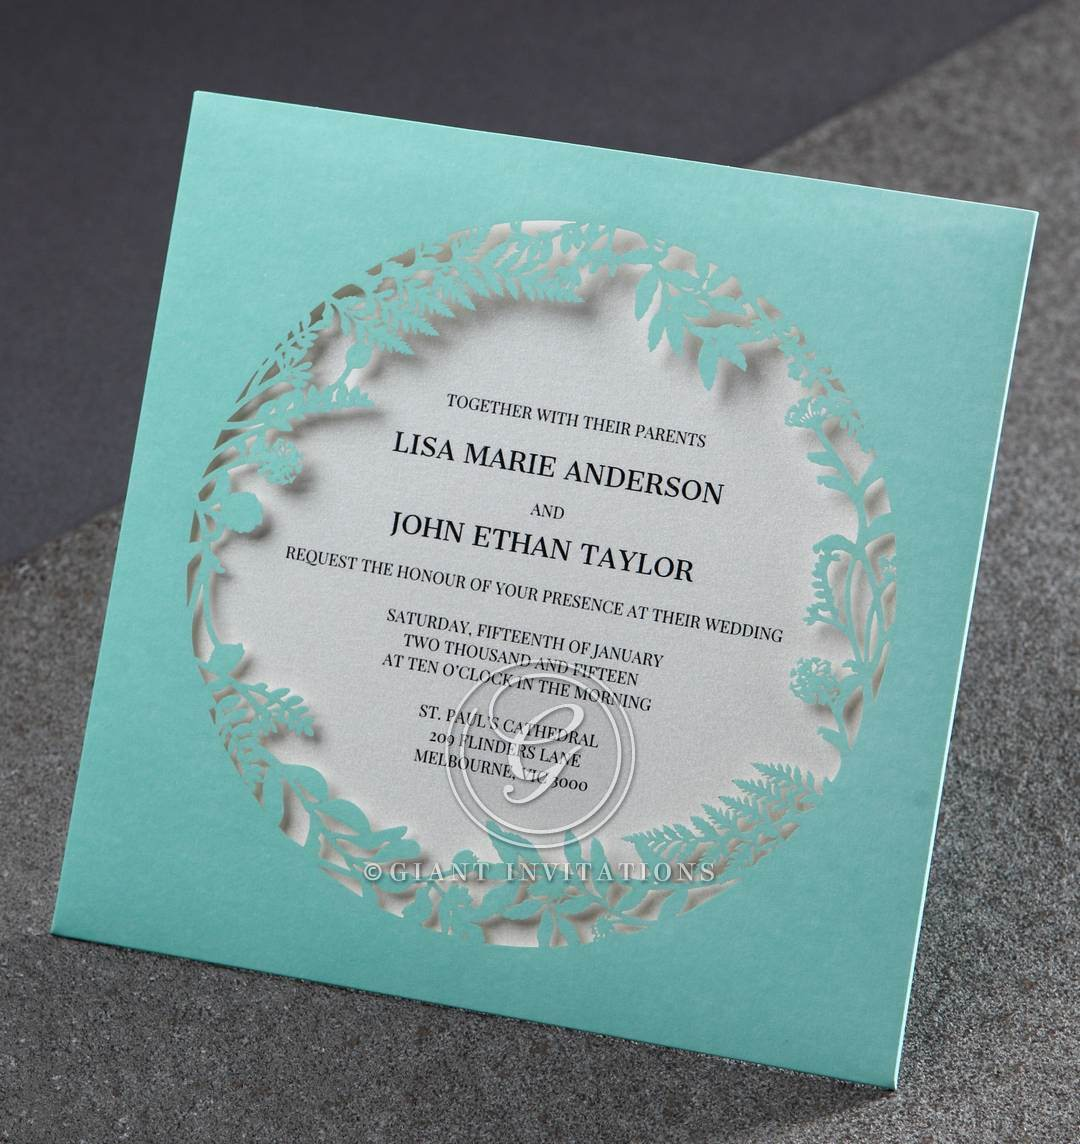 Laser cut pocket invitation featuring a wreath window, pearl paper ...